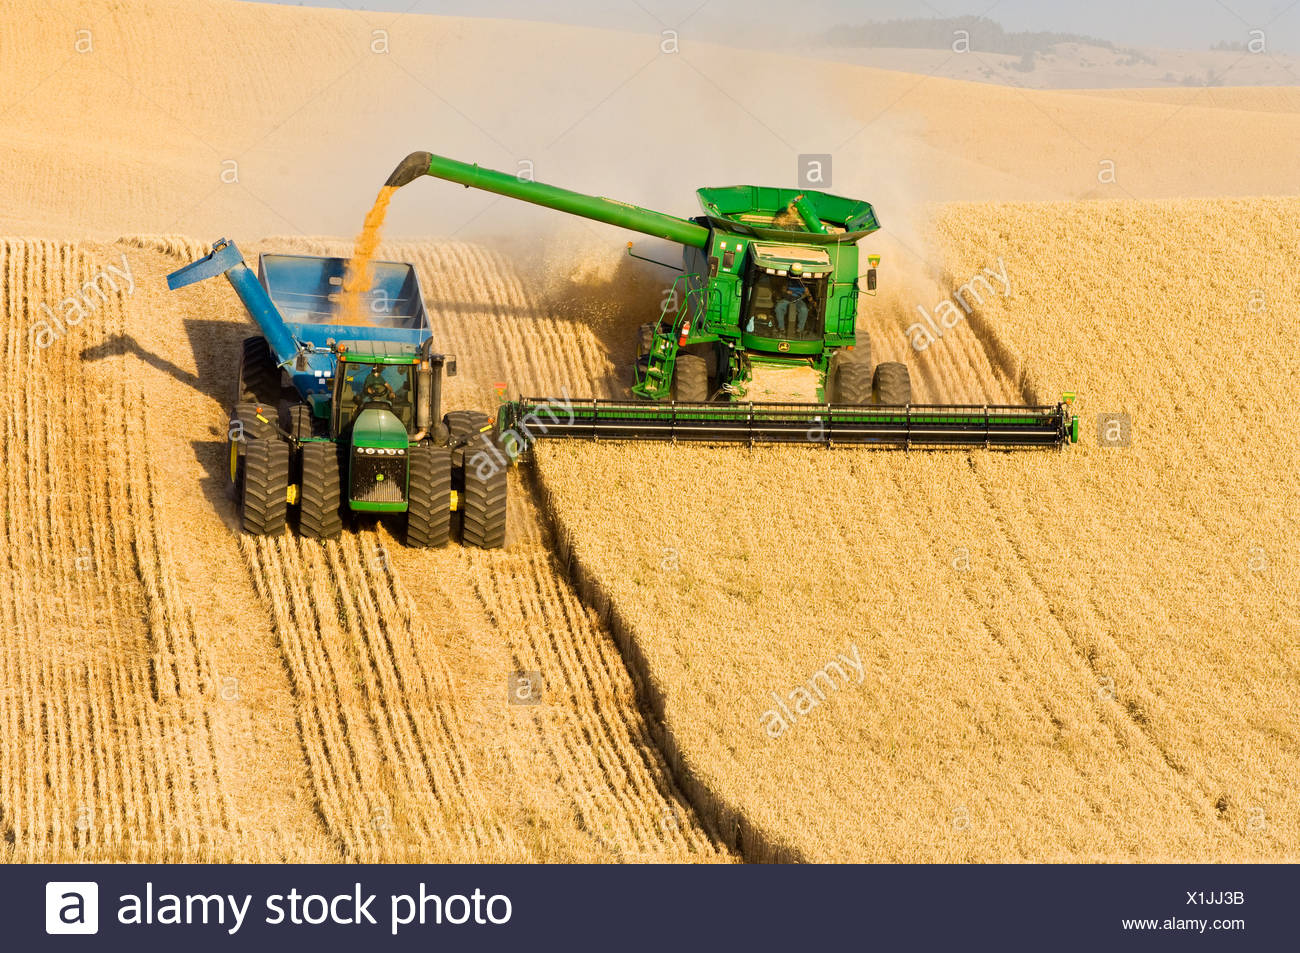 "A John Deere combine harvests Soft White wheat on rolling hillside terrain and unloads into a grain wagon ""on-the-go"" / USA. - Stock Image"